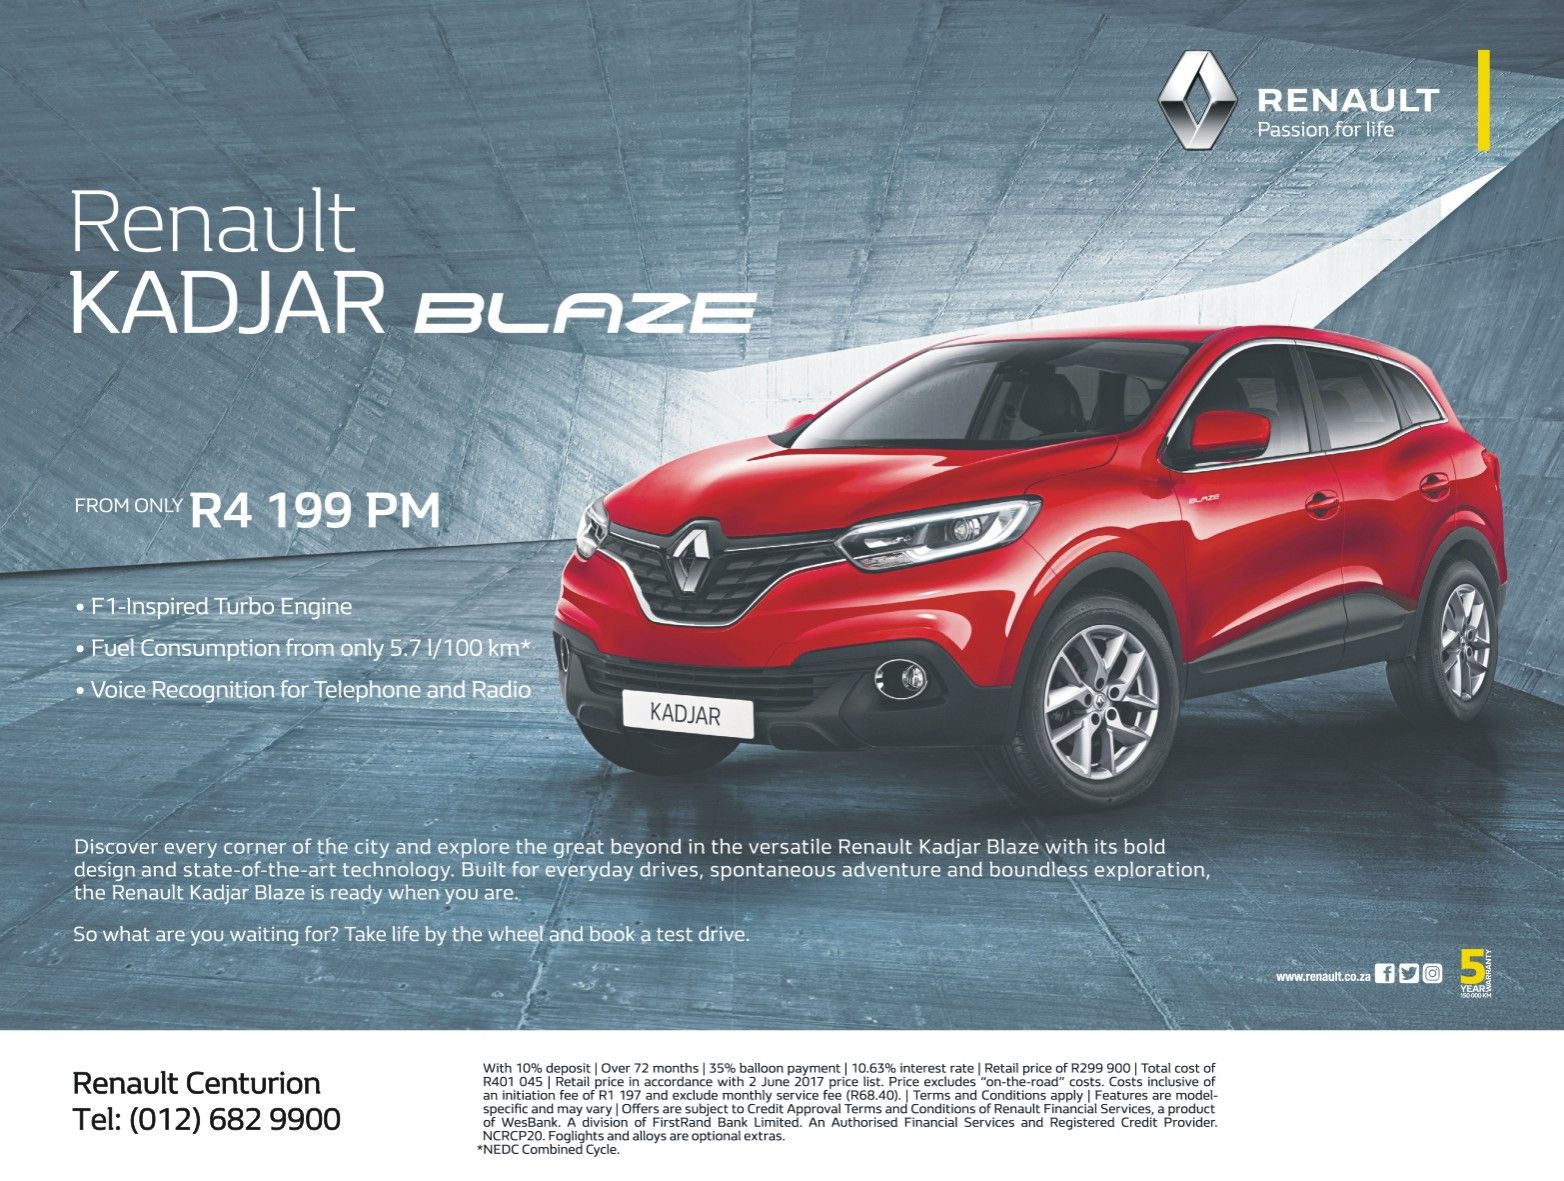 Renault Passion For Life Don T Miss Out On This Amazing Renault Kadjar Blaze From Only R4 199 Pm Contact Renau Art And Technology Renault Centurion